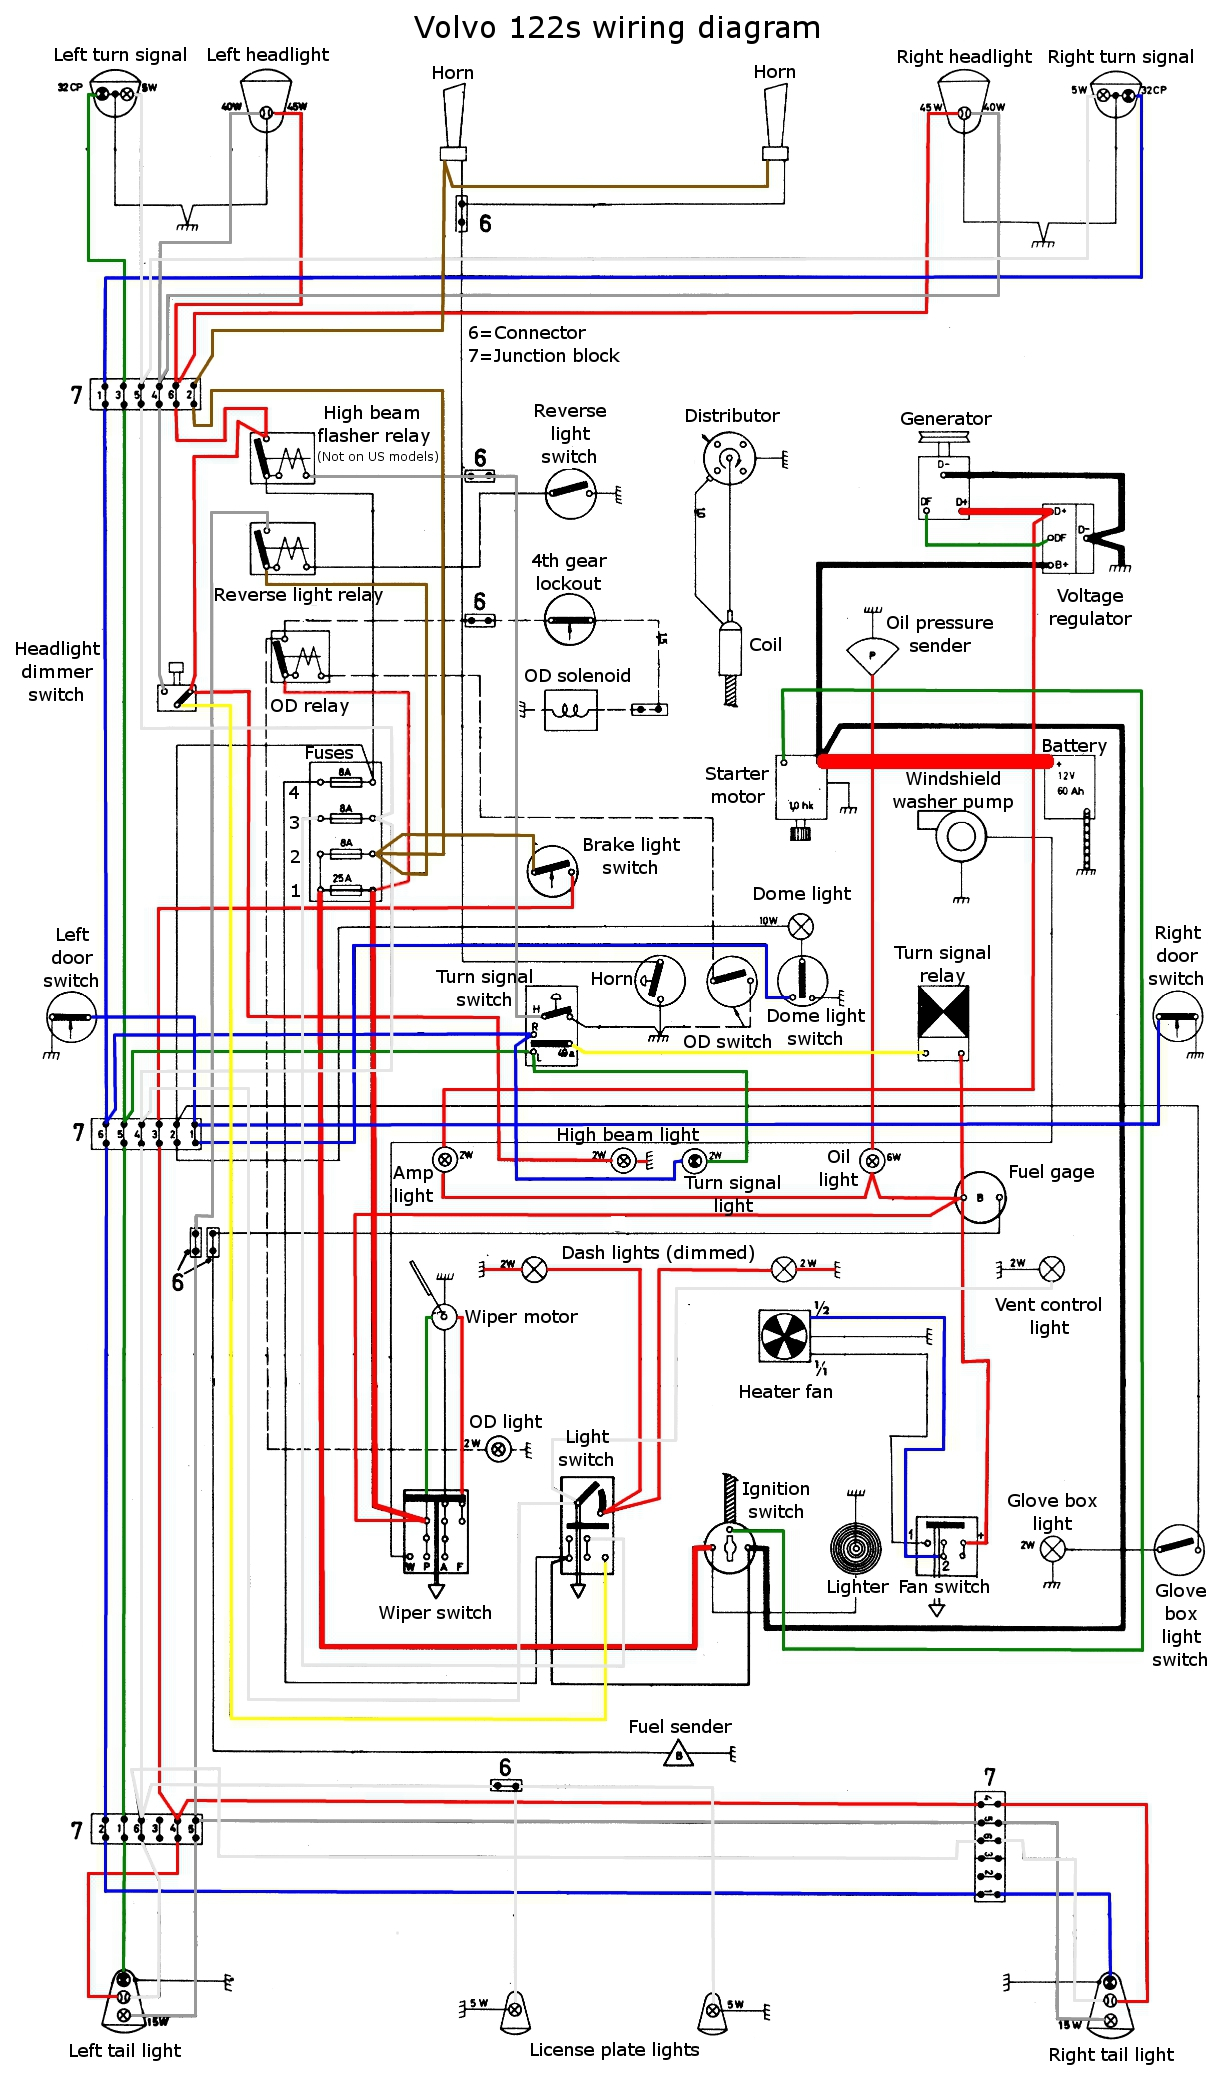 122 wiring diagram color 2005 volvo s40 wiring diagram volvo s40 steering diagram \u2022 wiring 2004 Volvo XC90 ABS Wiring Diagram at love-stories.co